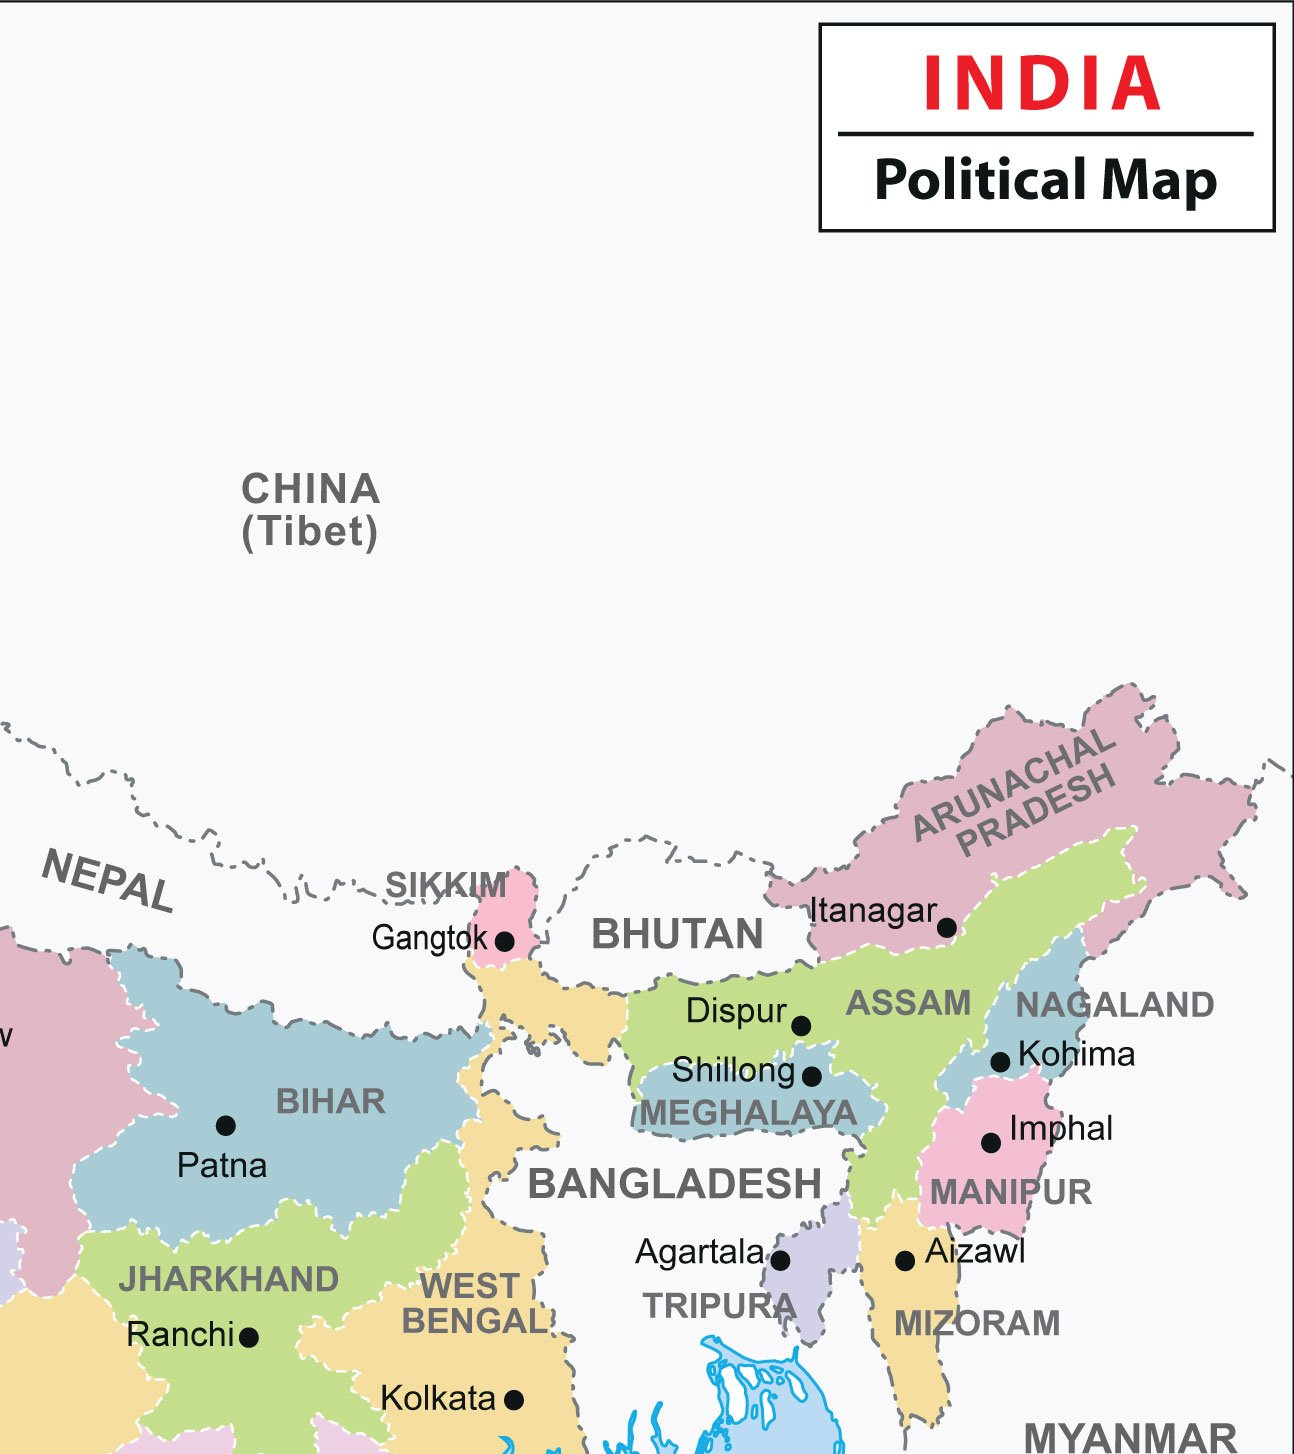 India Political Wall Map, 27 5x32 inches